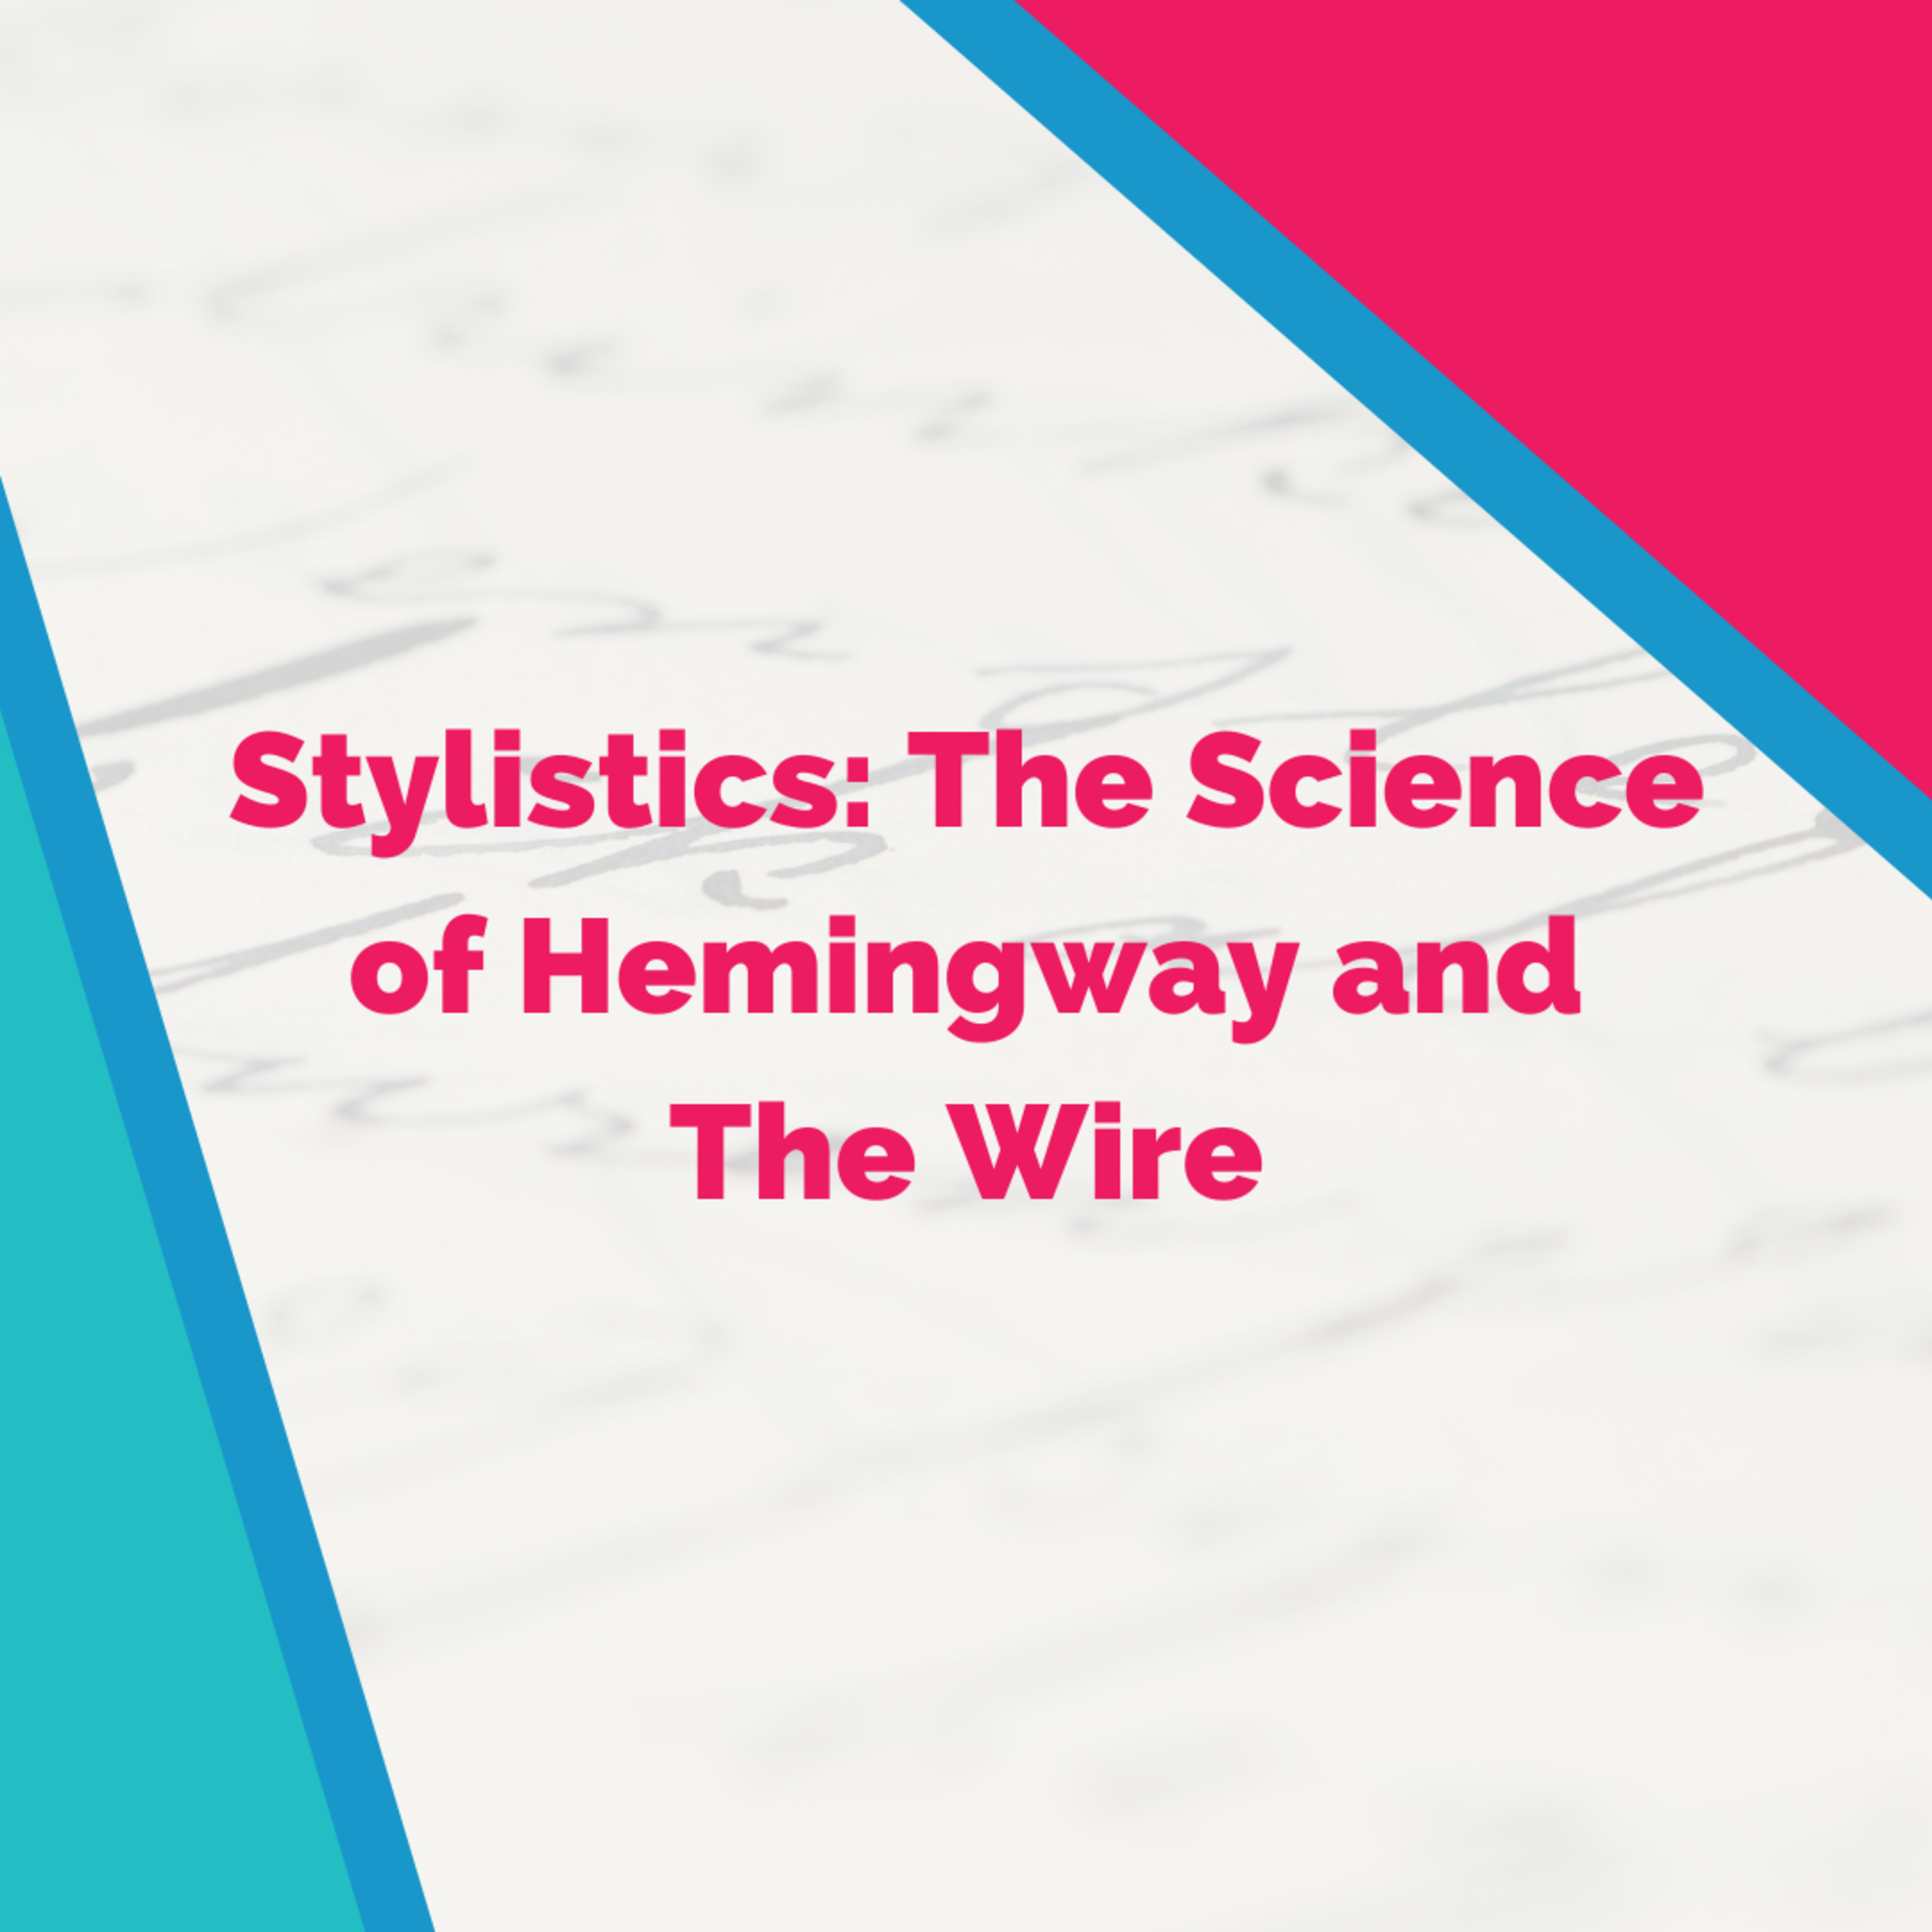 Stylistics: The Science of Hemingway and The Wire (with Professor Dan McIntyre)